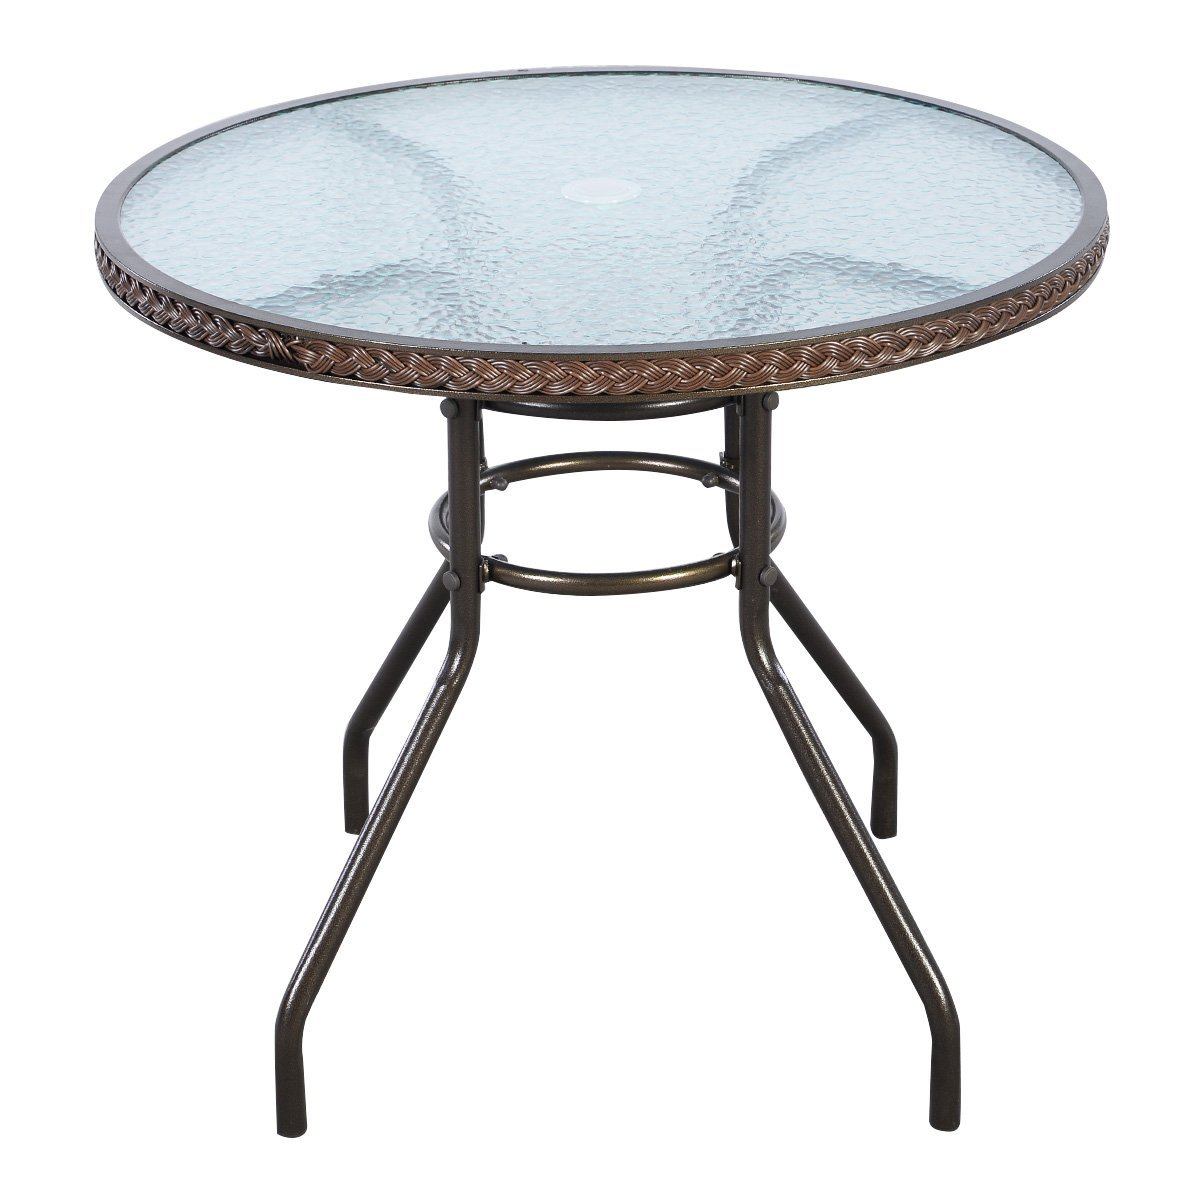 Tangkula 32'' Patio Table Outdoor Round Wicker Covered Edge with Tempered Glass Top and Umbrella Insert Coffee Dining Tabel Patio Furniture for Lawn Garden Pool Steel Frame Commercial Party Table by Tangkula